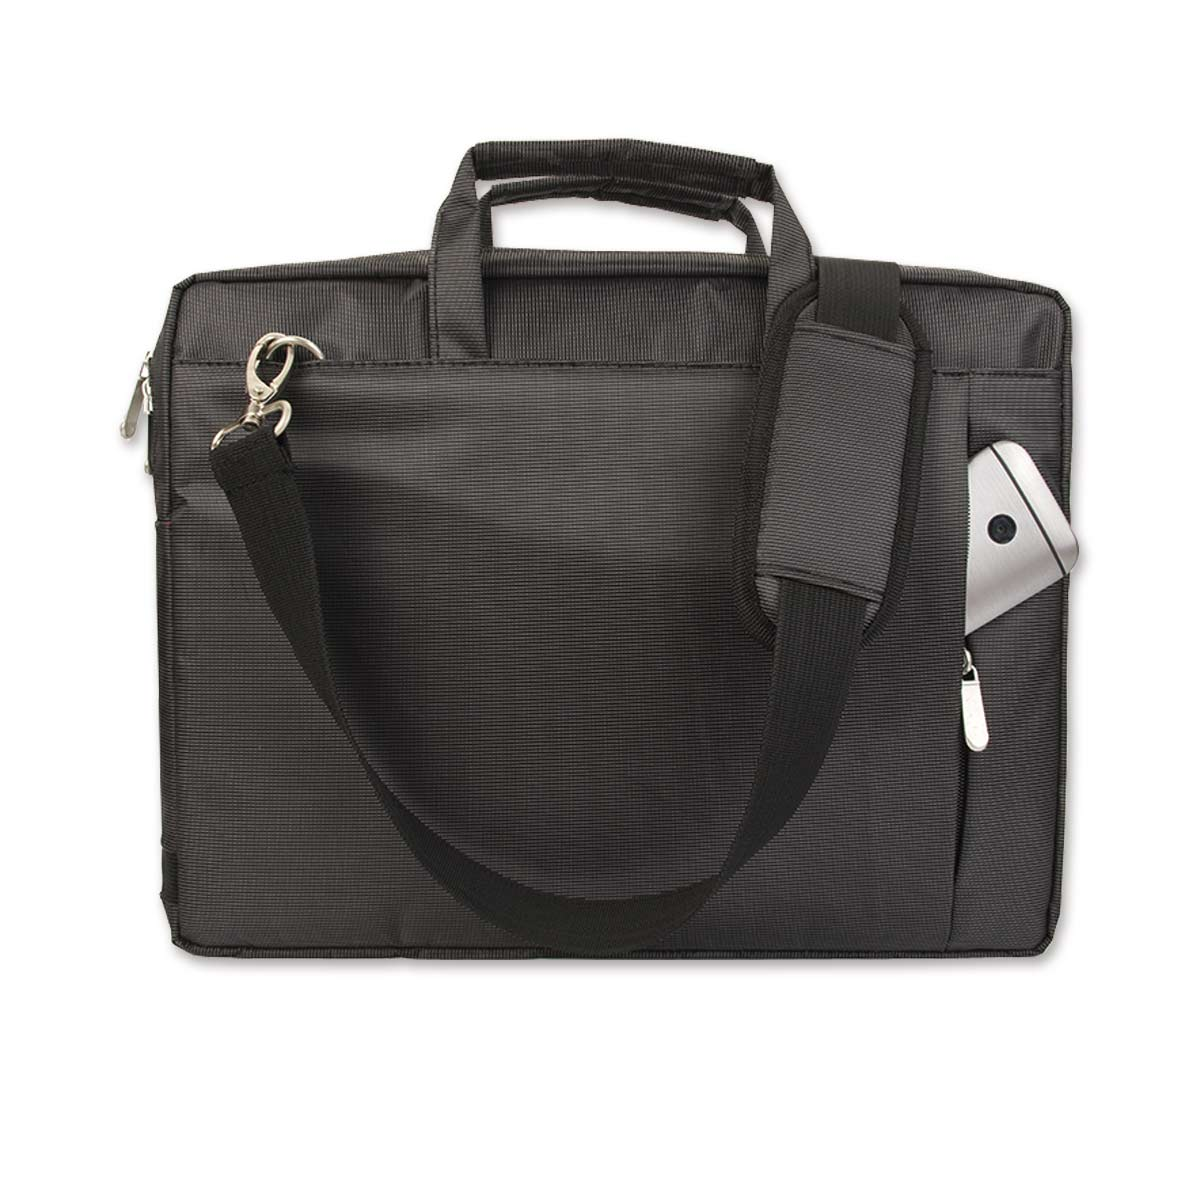 Laptop-Bag – 2015-01 (approx. 39 x 31 x 5 cm, black)